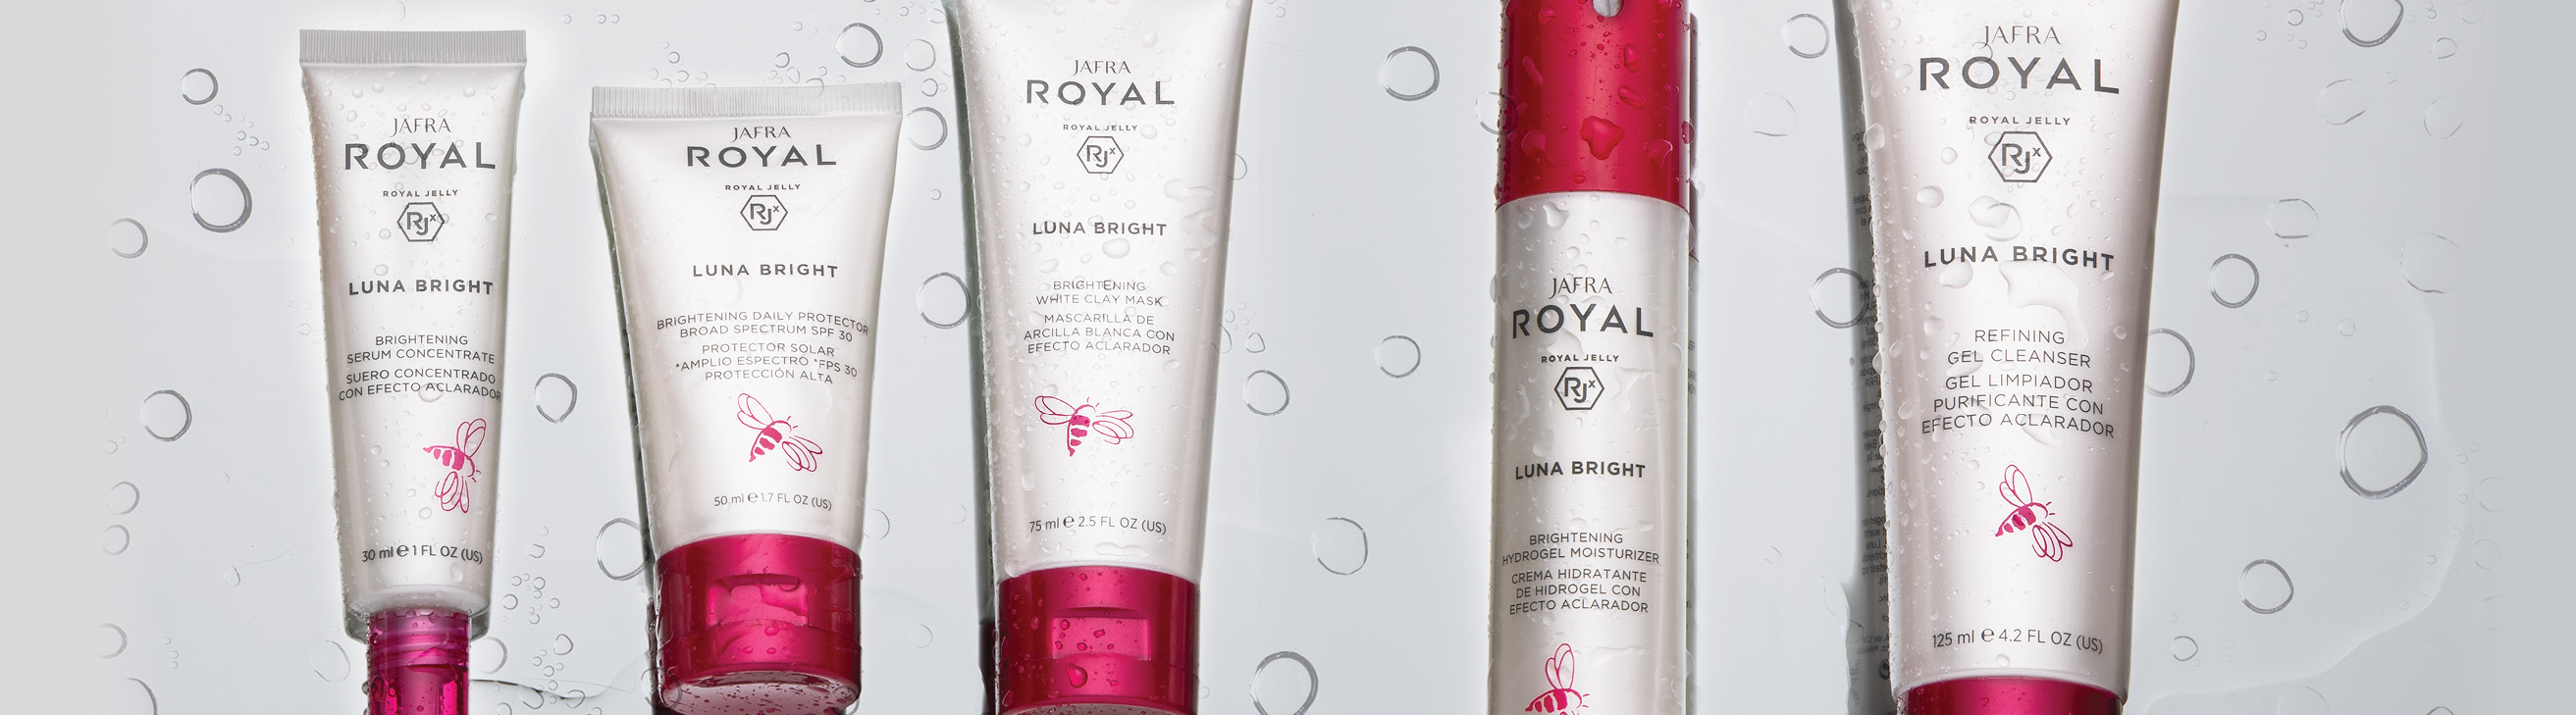 CATEGORY BANNER SKINCARE JAFRA ROYAL LUNA BRIGHT